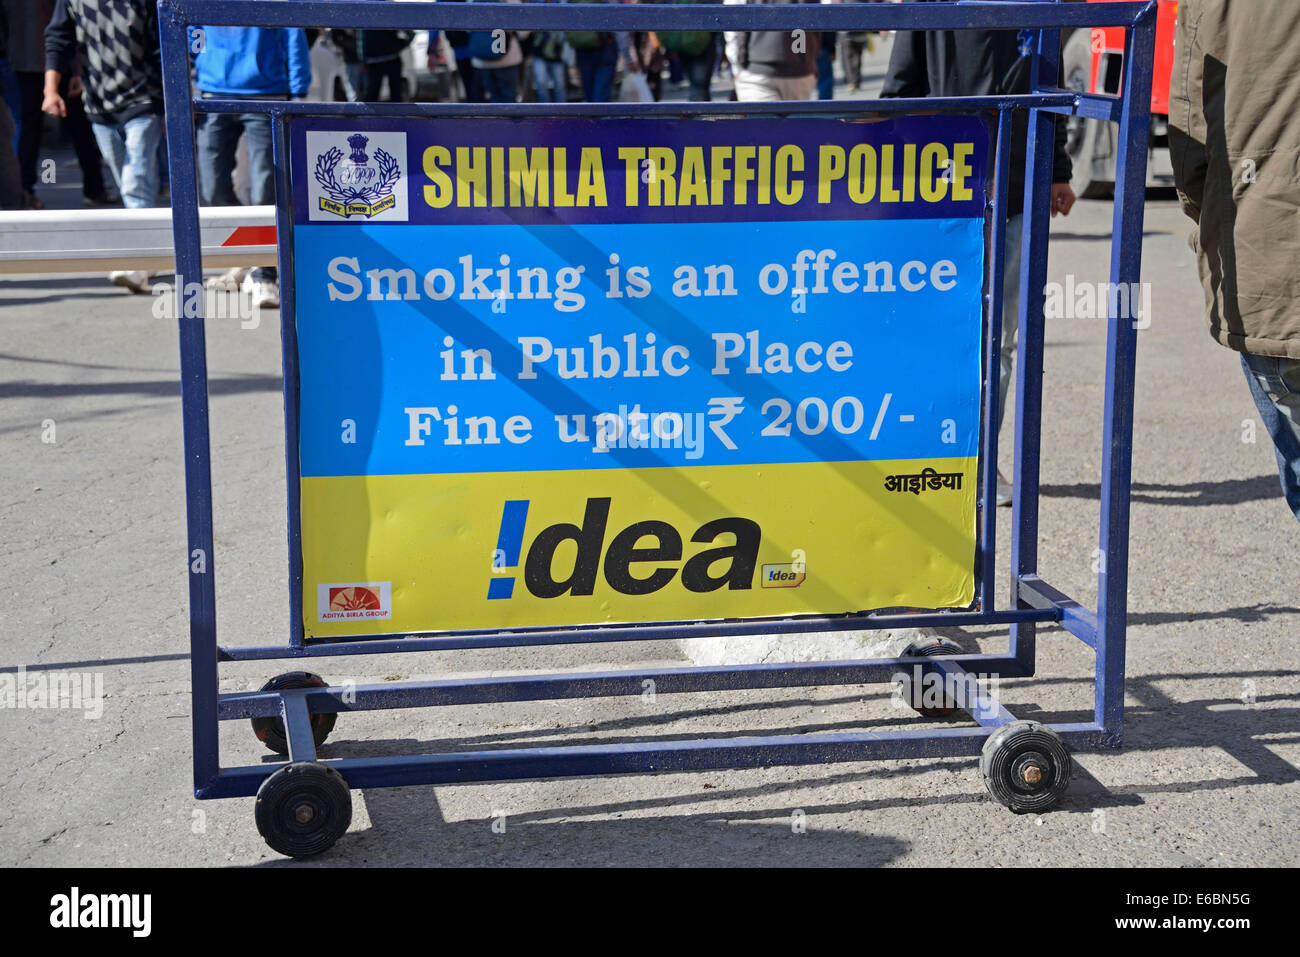 A no-smoking sign on Mall Road  in Shimla in Himachal Pradesh,India - Stock Image